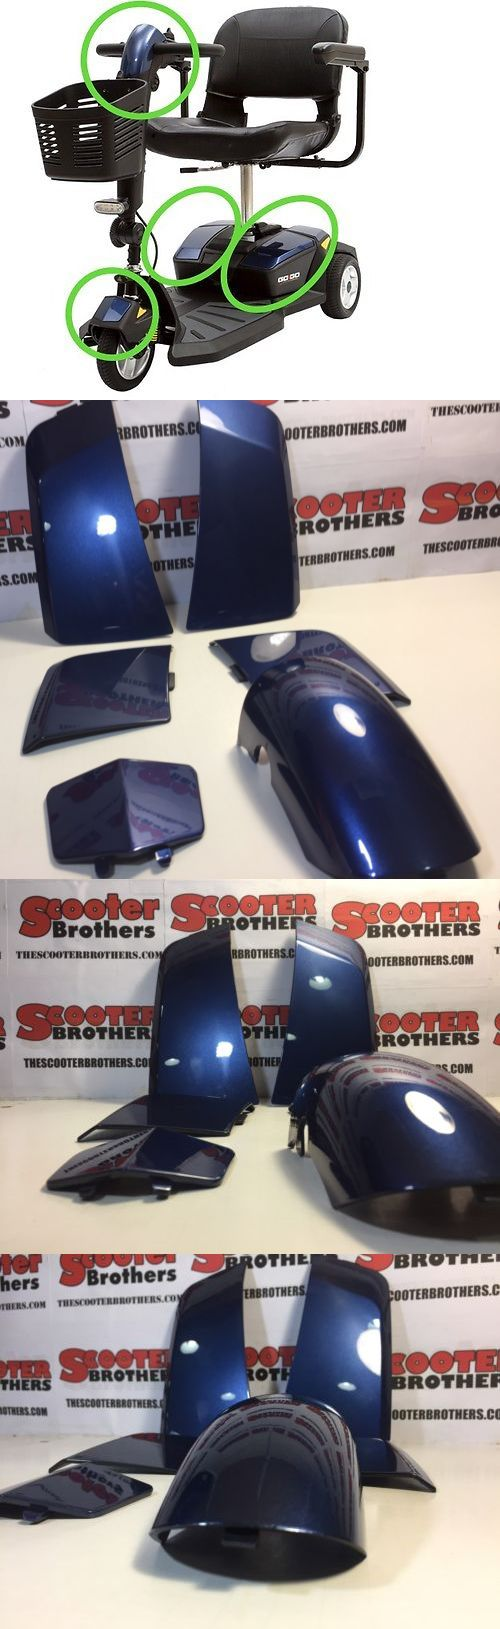 Mobility Scooter Parts: Pride Go-Go Mobility Scooter Blue Body Shroud Kit For Elite Traveler W Cts -> BUY IT NOW ONLY: $48.4 on eBay!